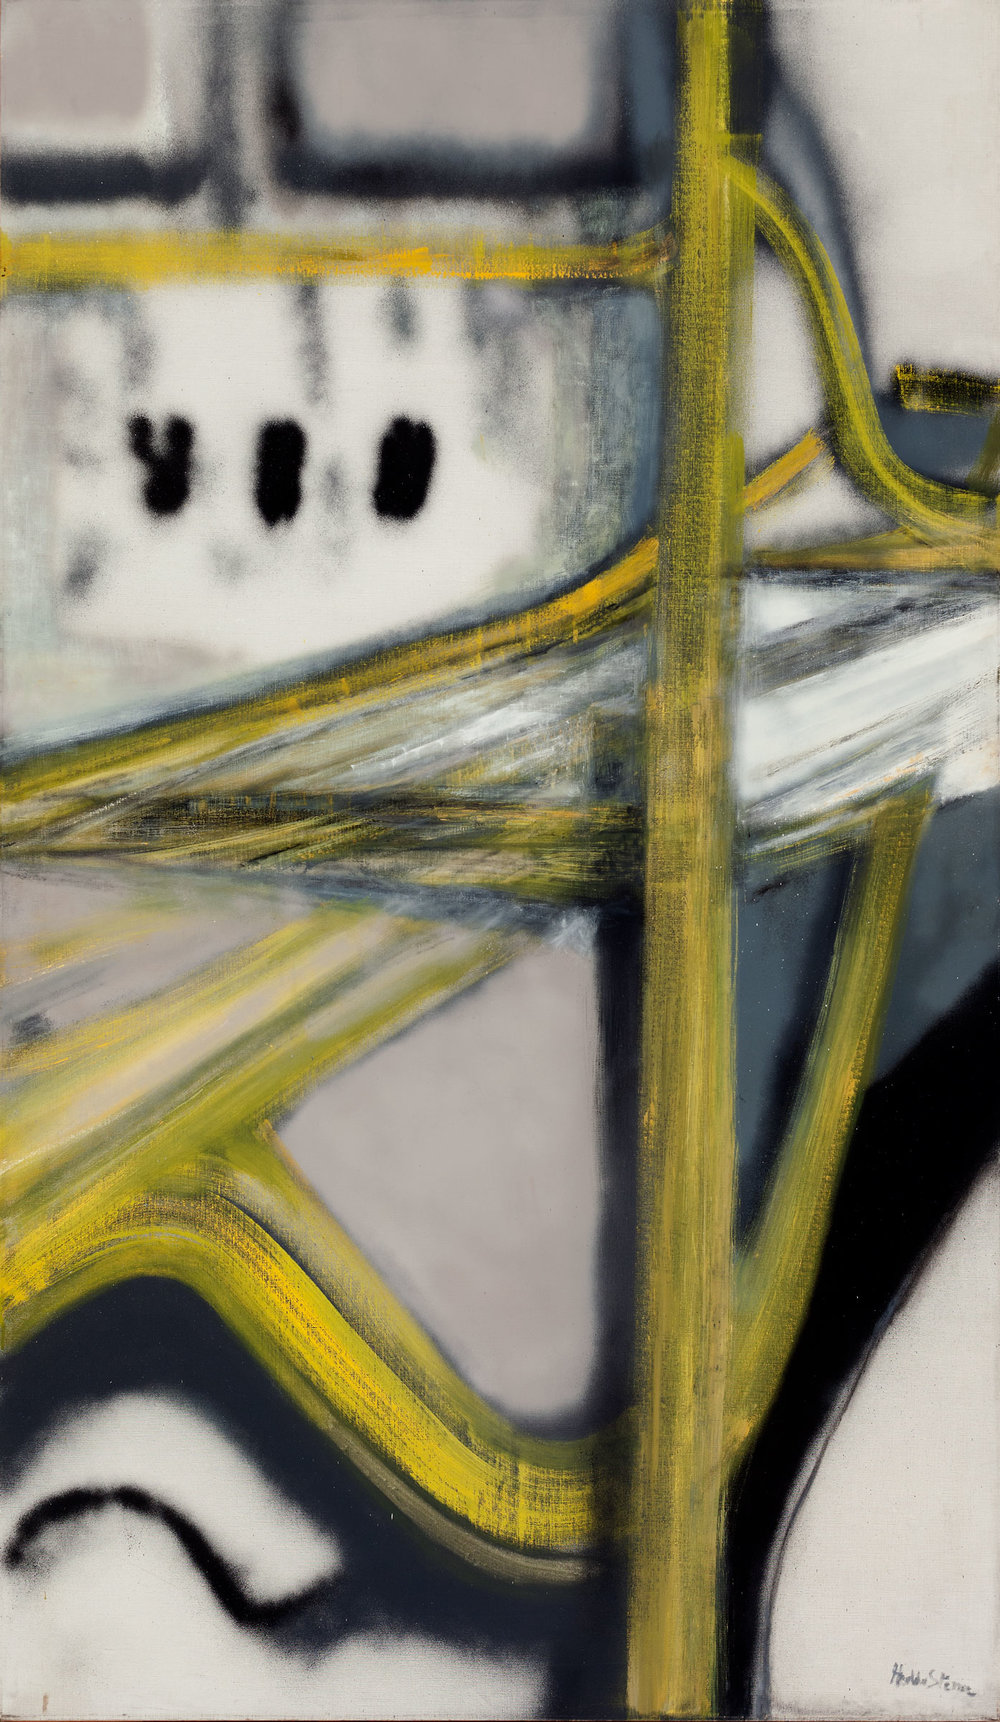 Hedda Sterne, Roads #5 , 1957, Oil, spray paint on canvas,86 in. x 50 in.